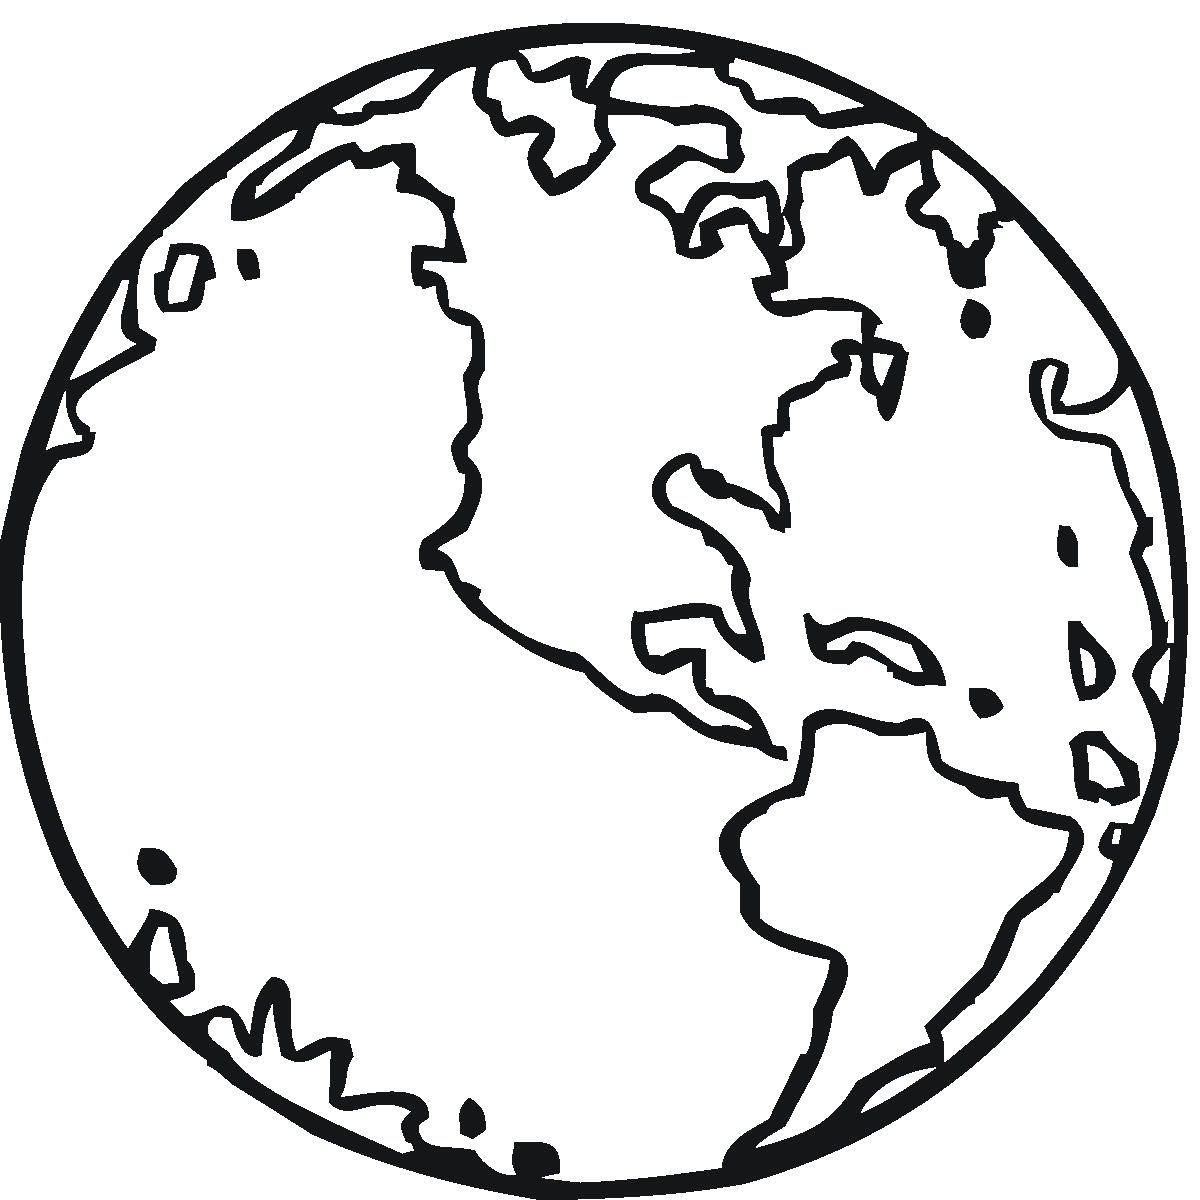 Coloring Pages Of the Earth to Print Free Printable Earth Coloring Pages for Kids